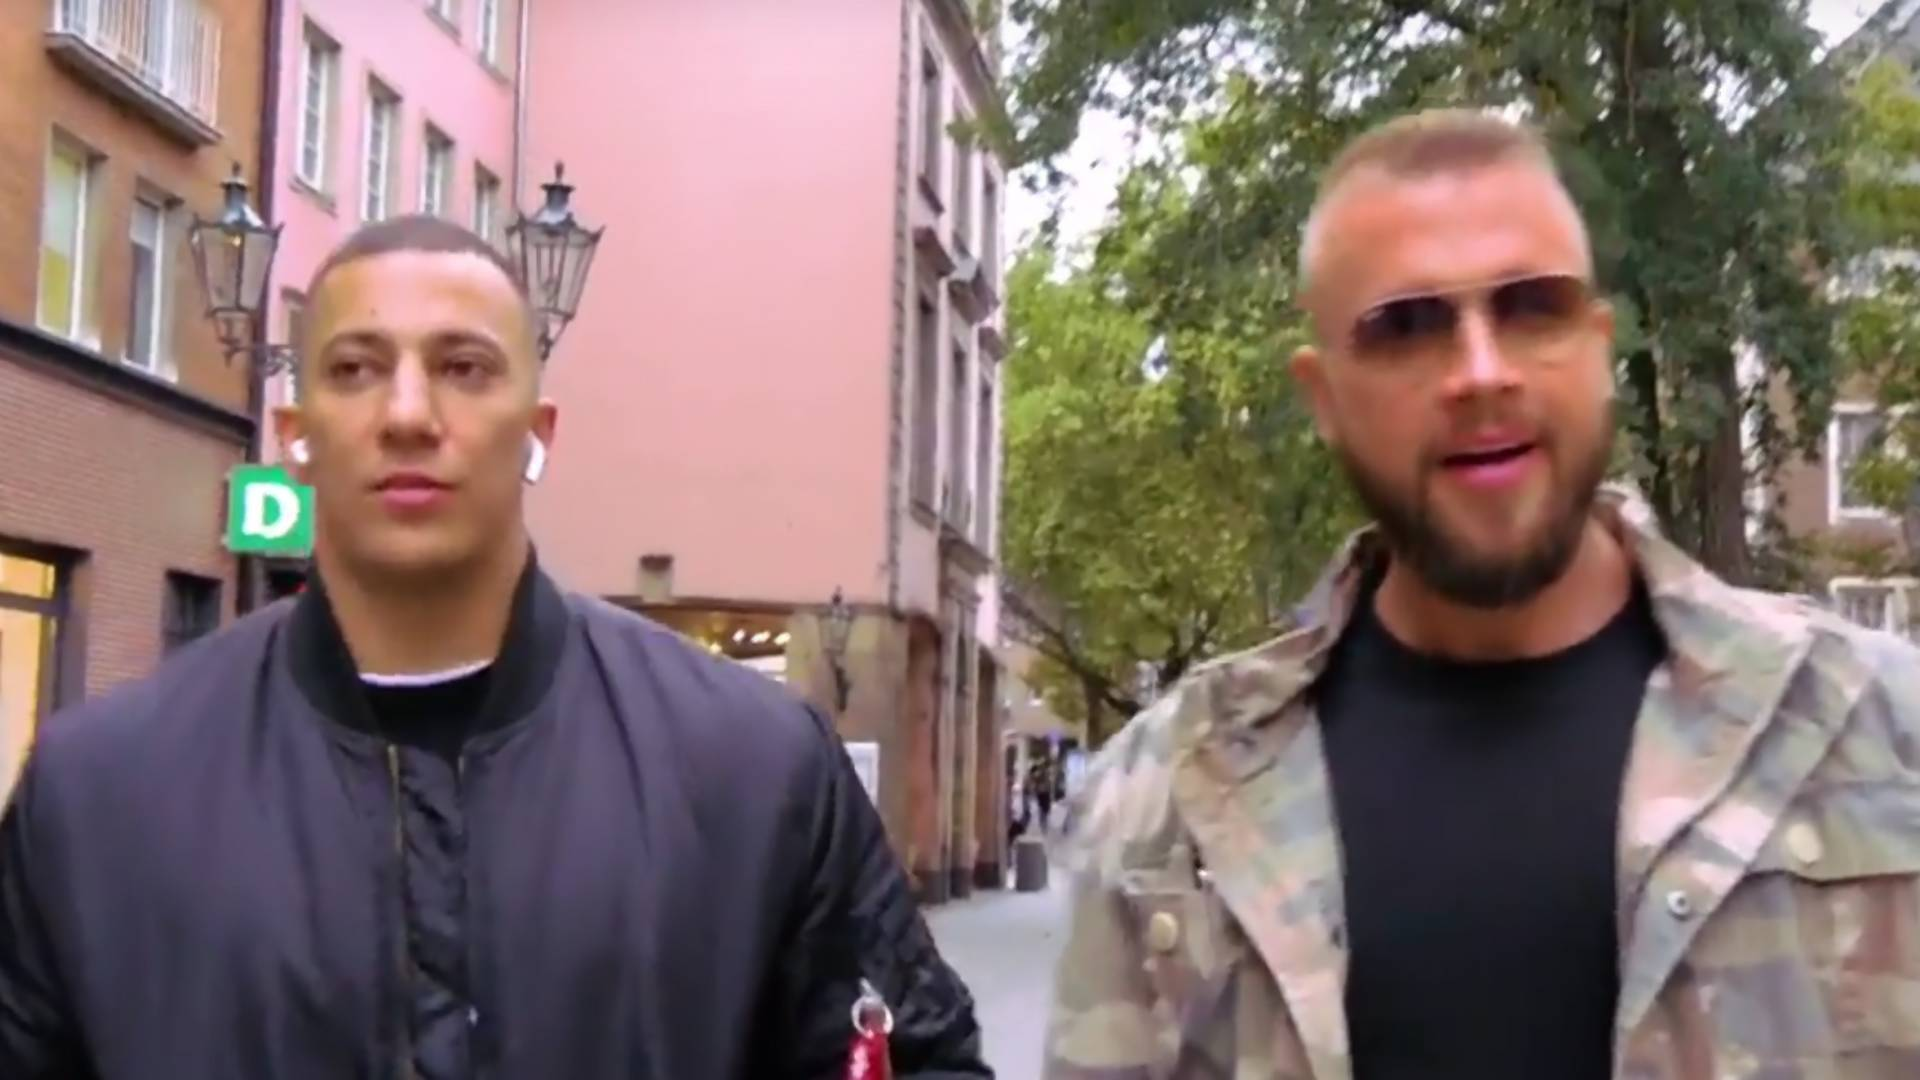 """Hassrede"": YouTube sperrt JBG-3-Video von Kollegah und Farid Bang"